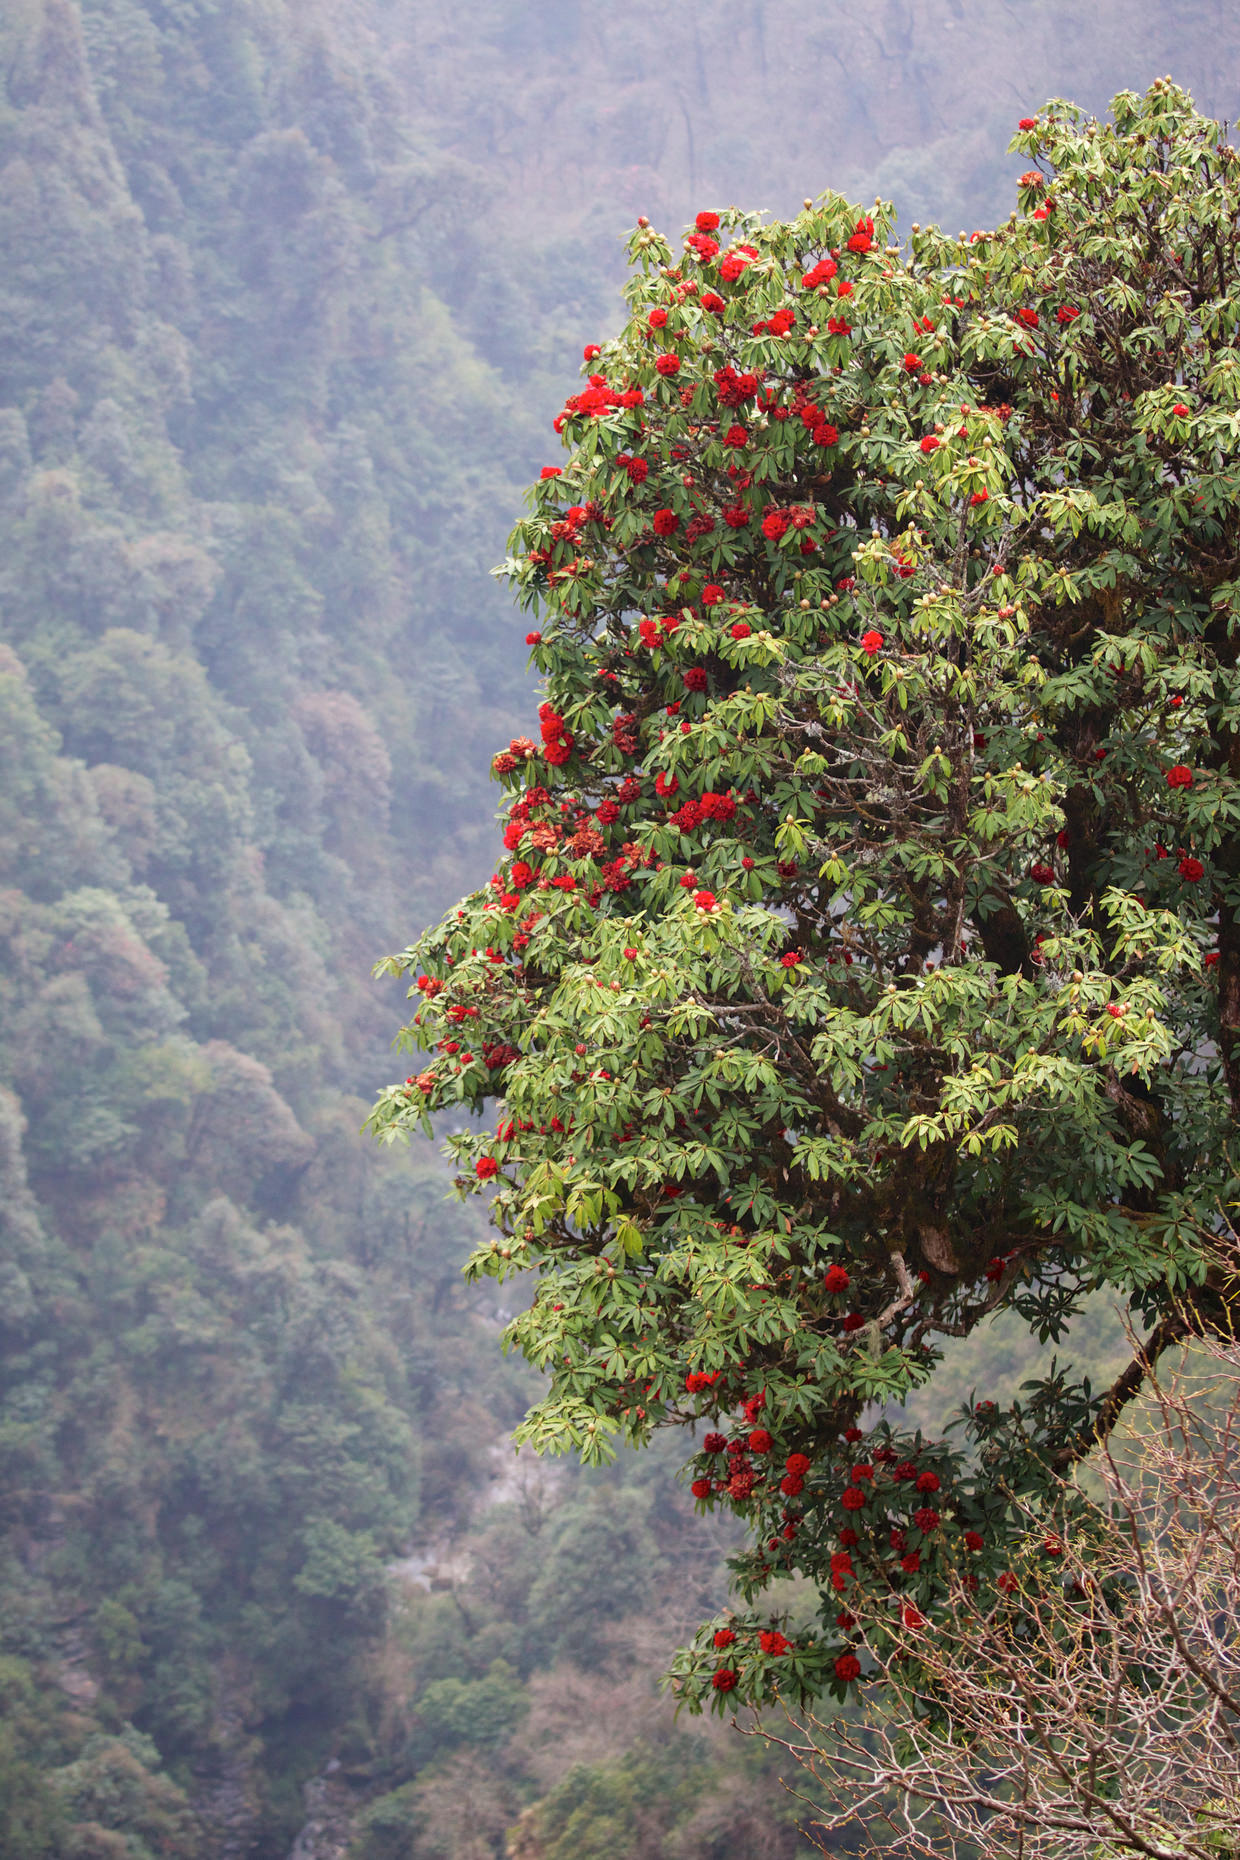 Rhododendrons leaning over the valley